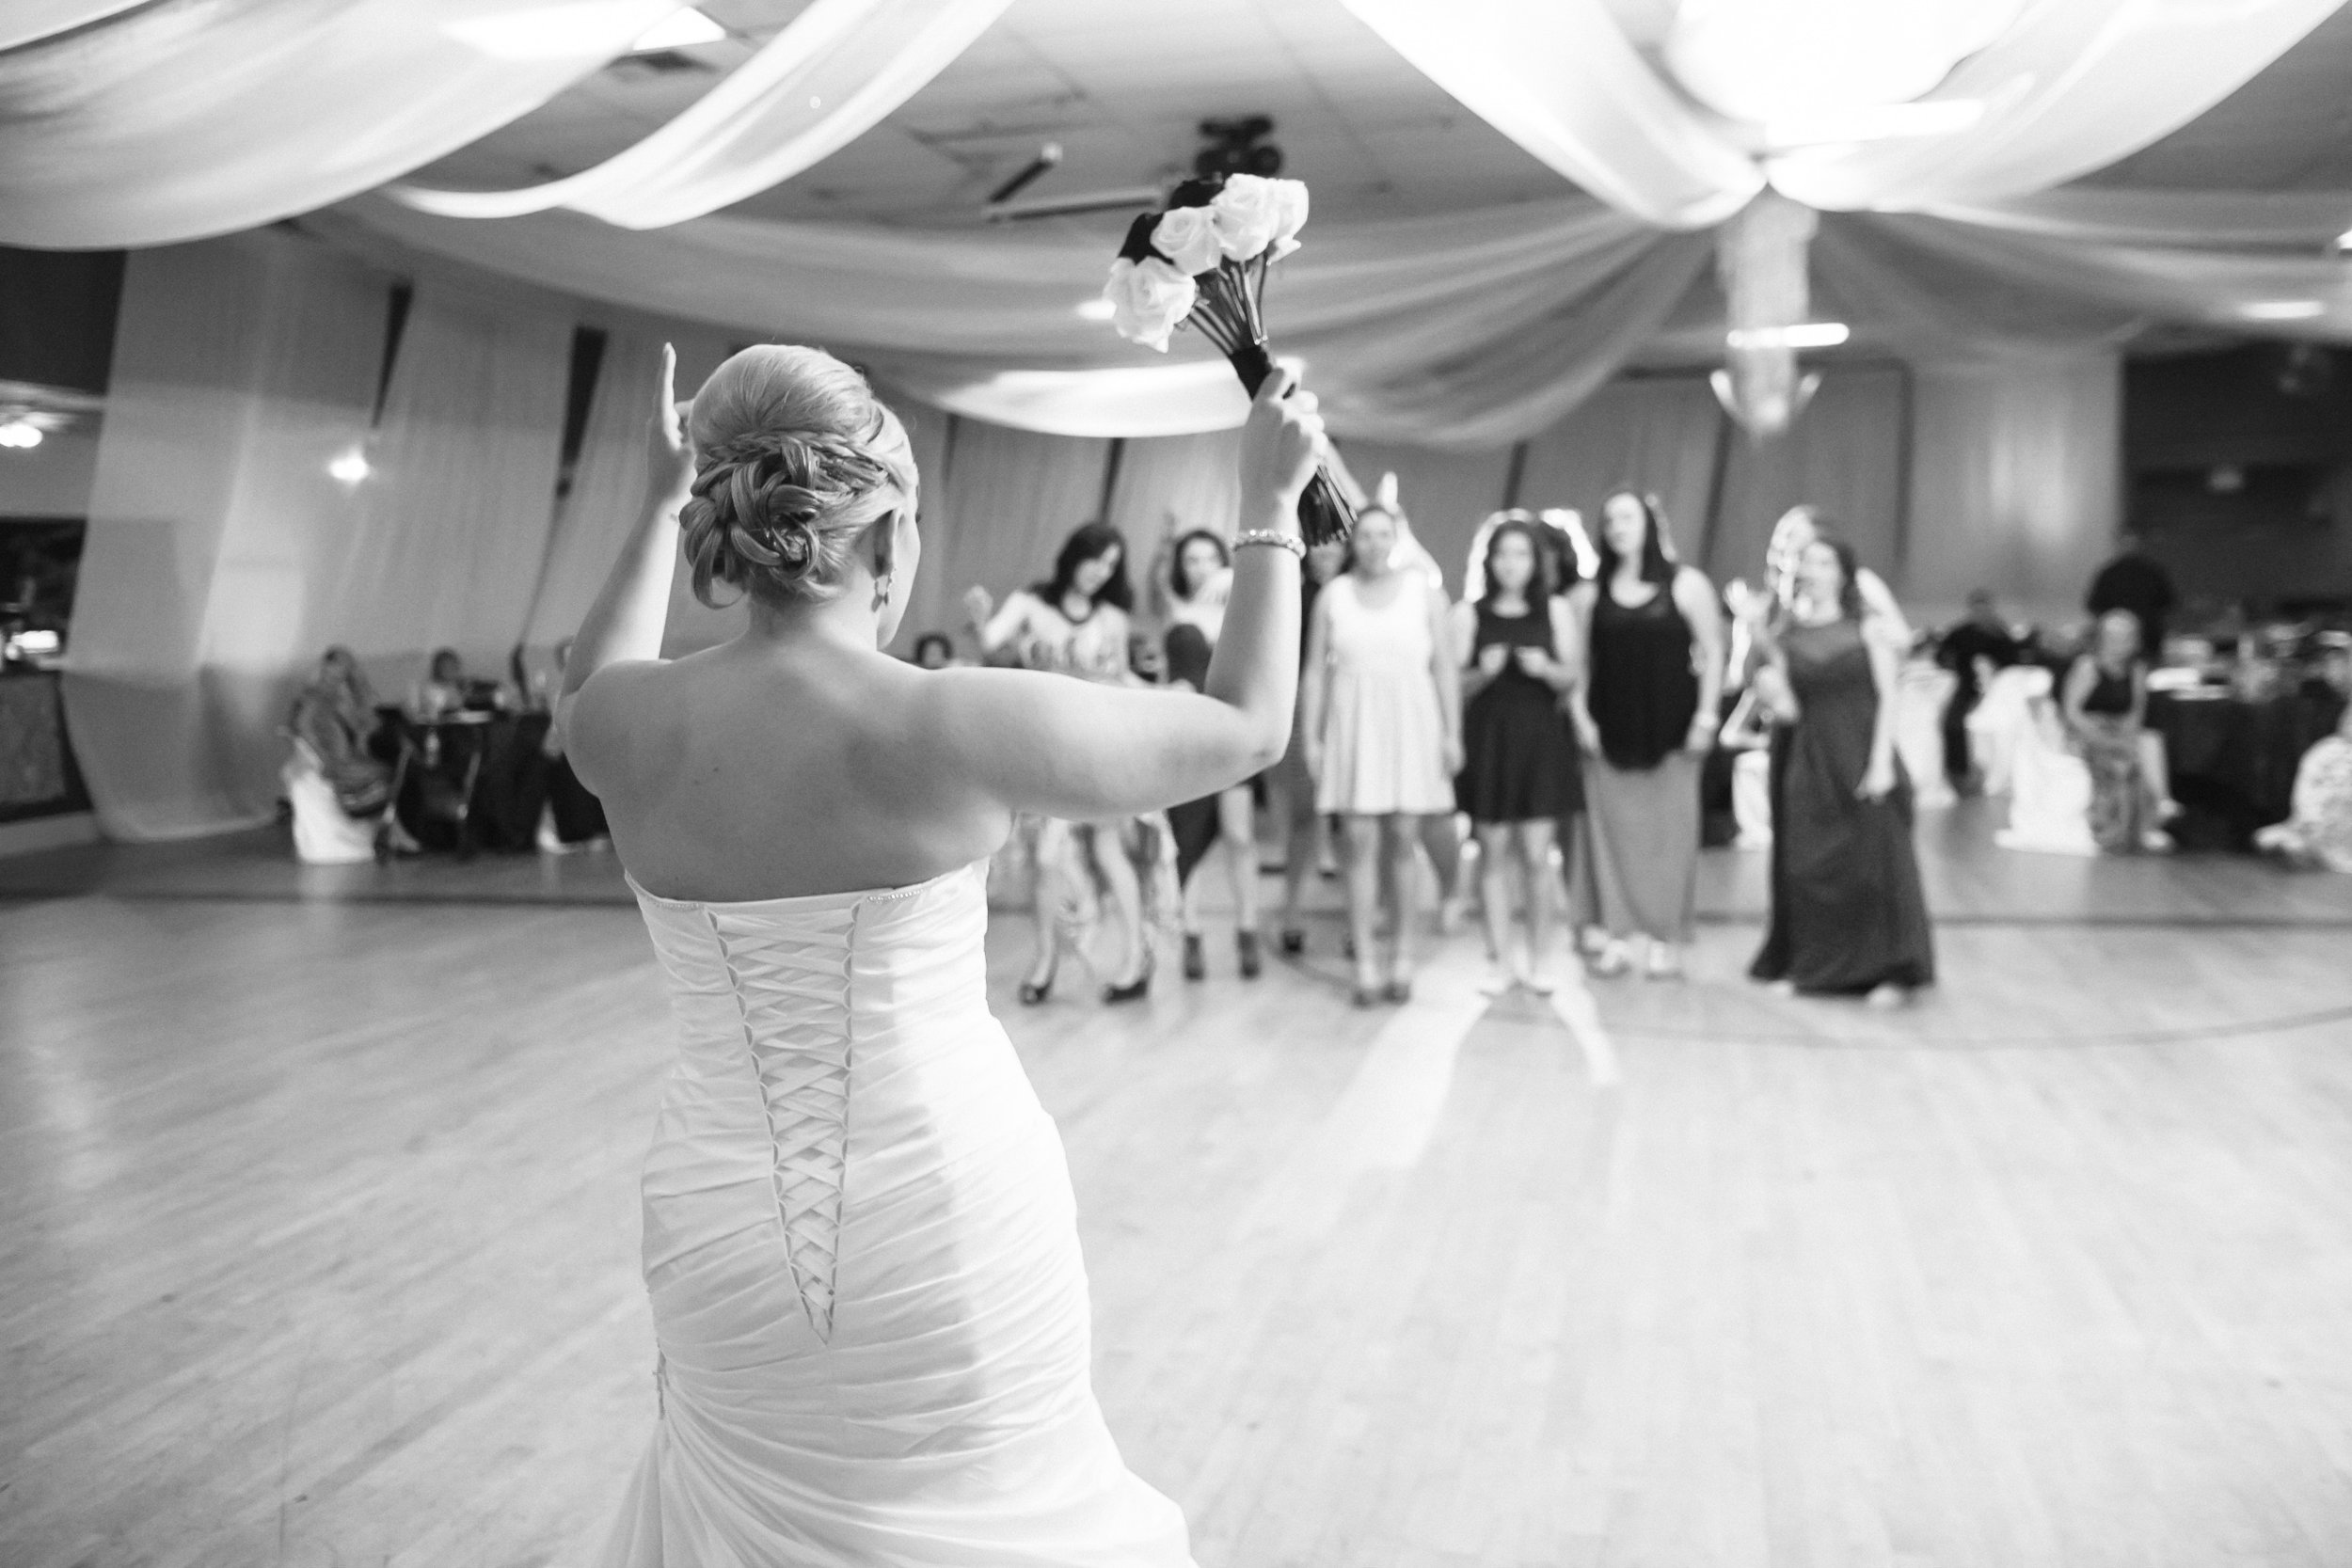 Steph & Jeff Wedding Day 5-2-15 by VICWASHERE.com | Victor The Photographer (341 of 444).jpg